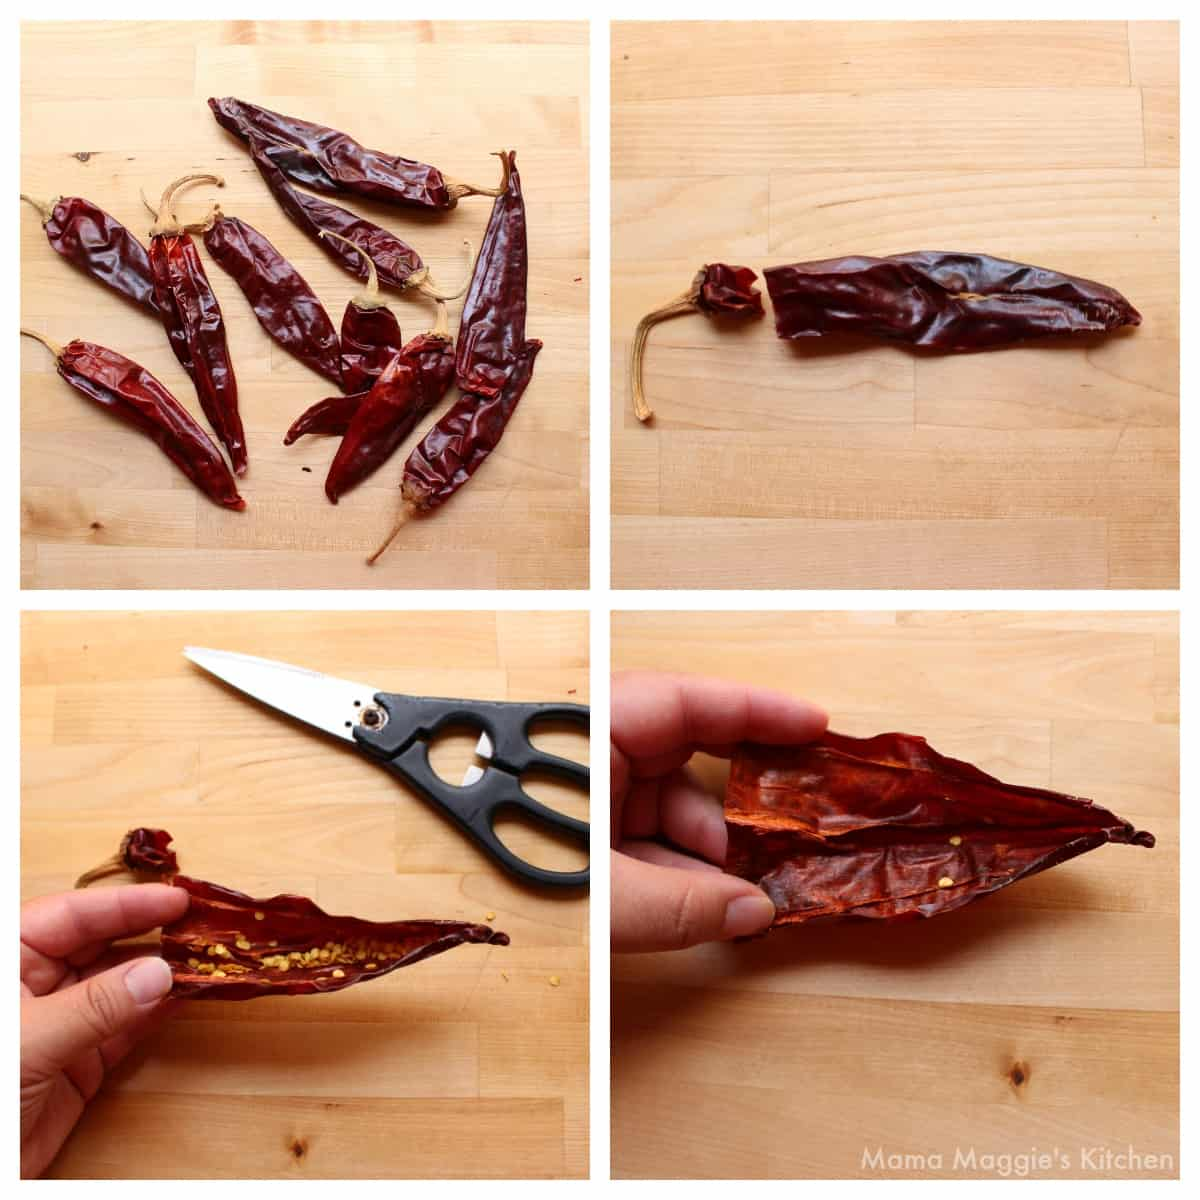 A collage showing how to remove the seeds and veins from dried guajillo chile.